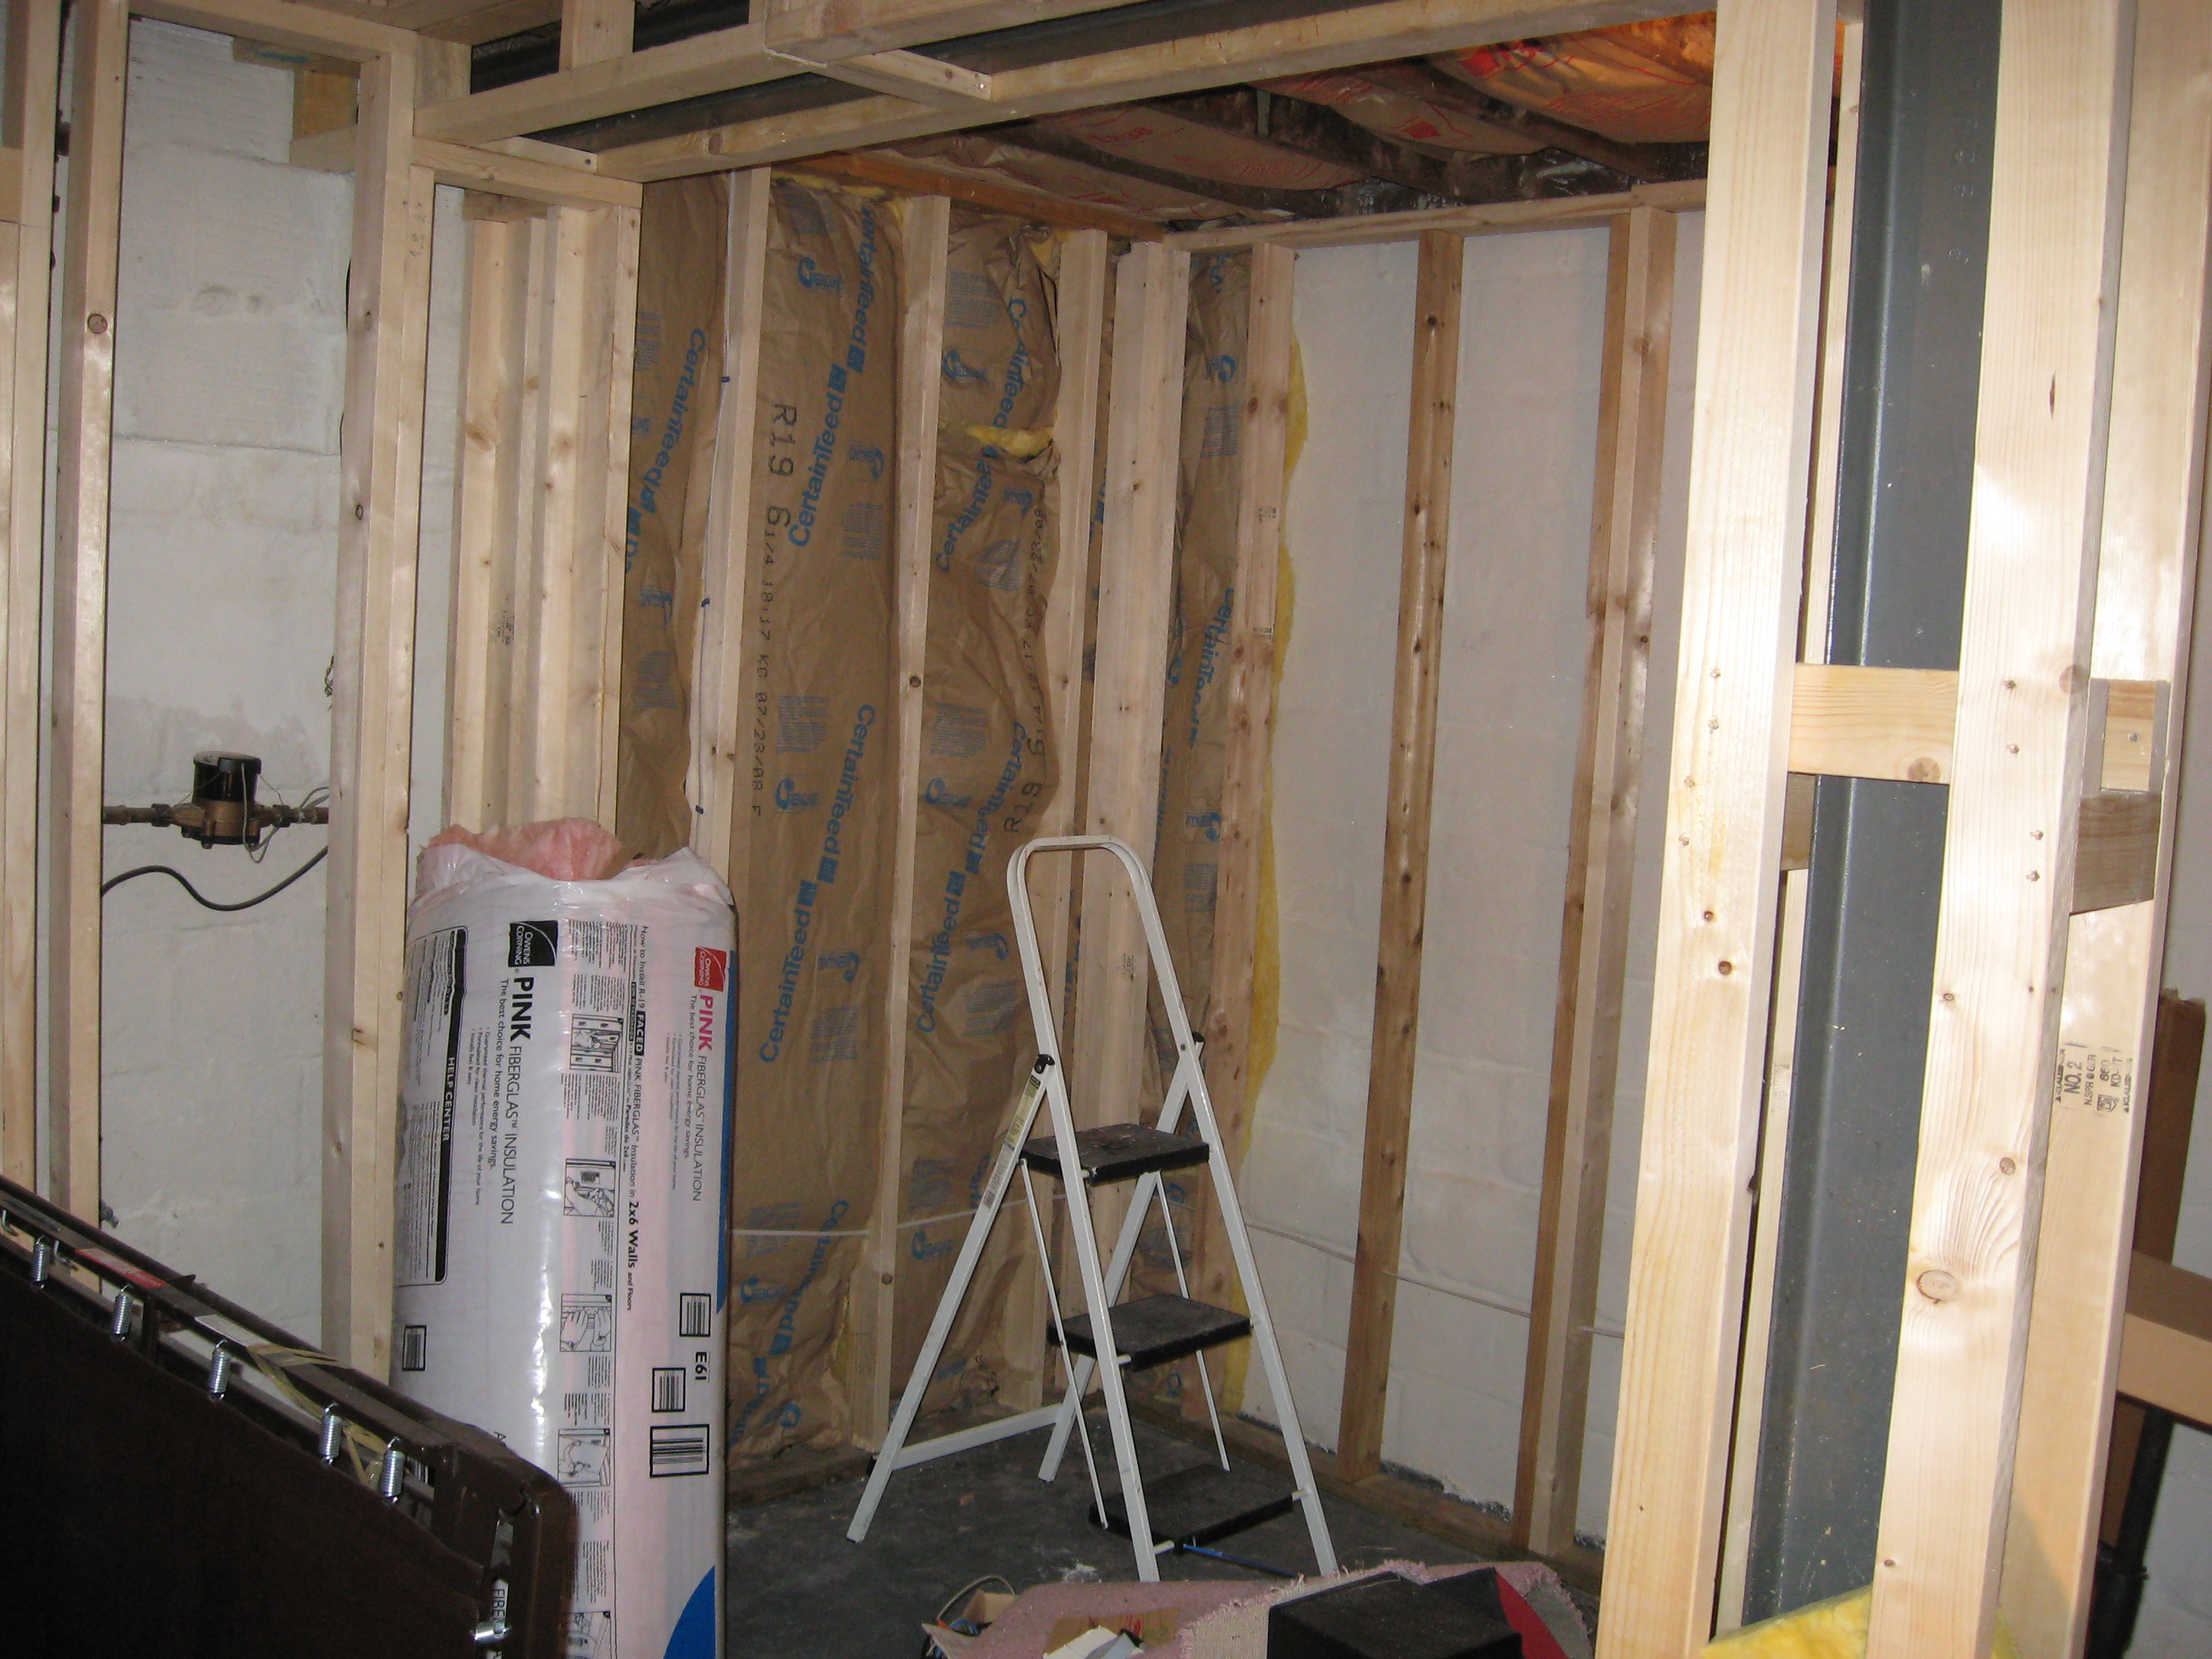 Studio Design Musicformedia Creating Music For A Multimedia World Electrical Wiring Basement Walls This Will Be The Front Wall